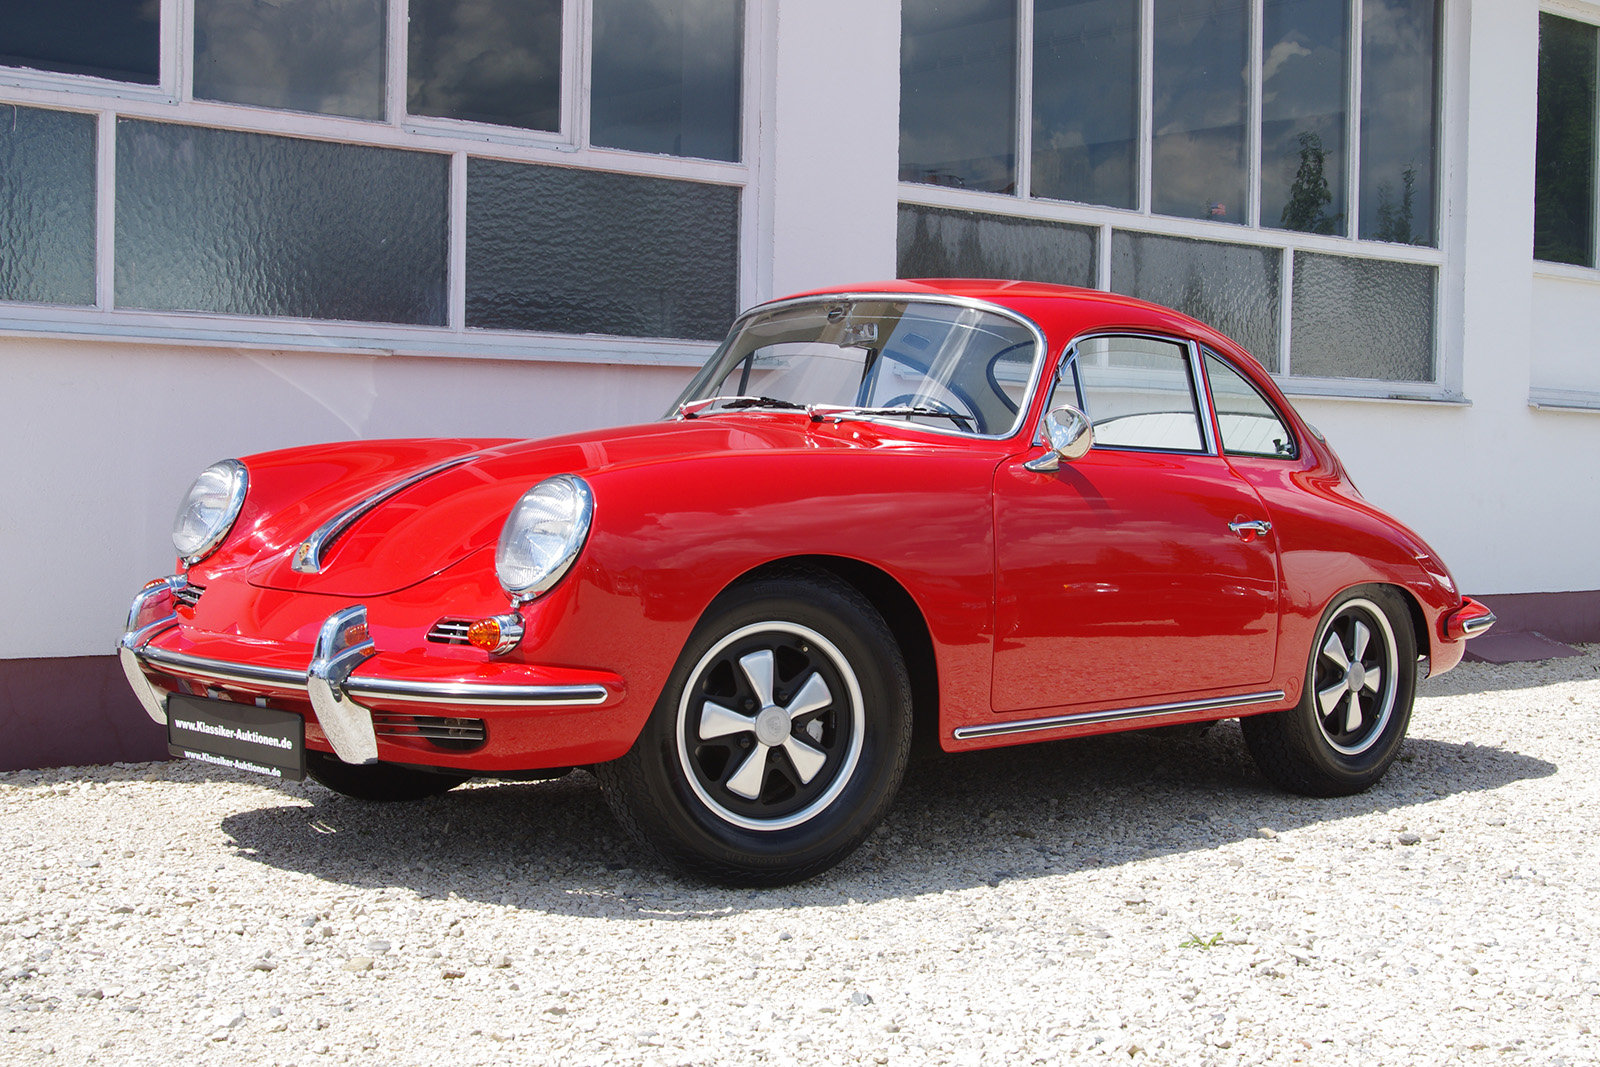 1964 Porsche 356 C Coupé *restored* MATCHING NUMBERS* For Sale (picture 2 of 6)